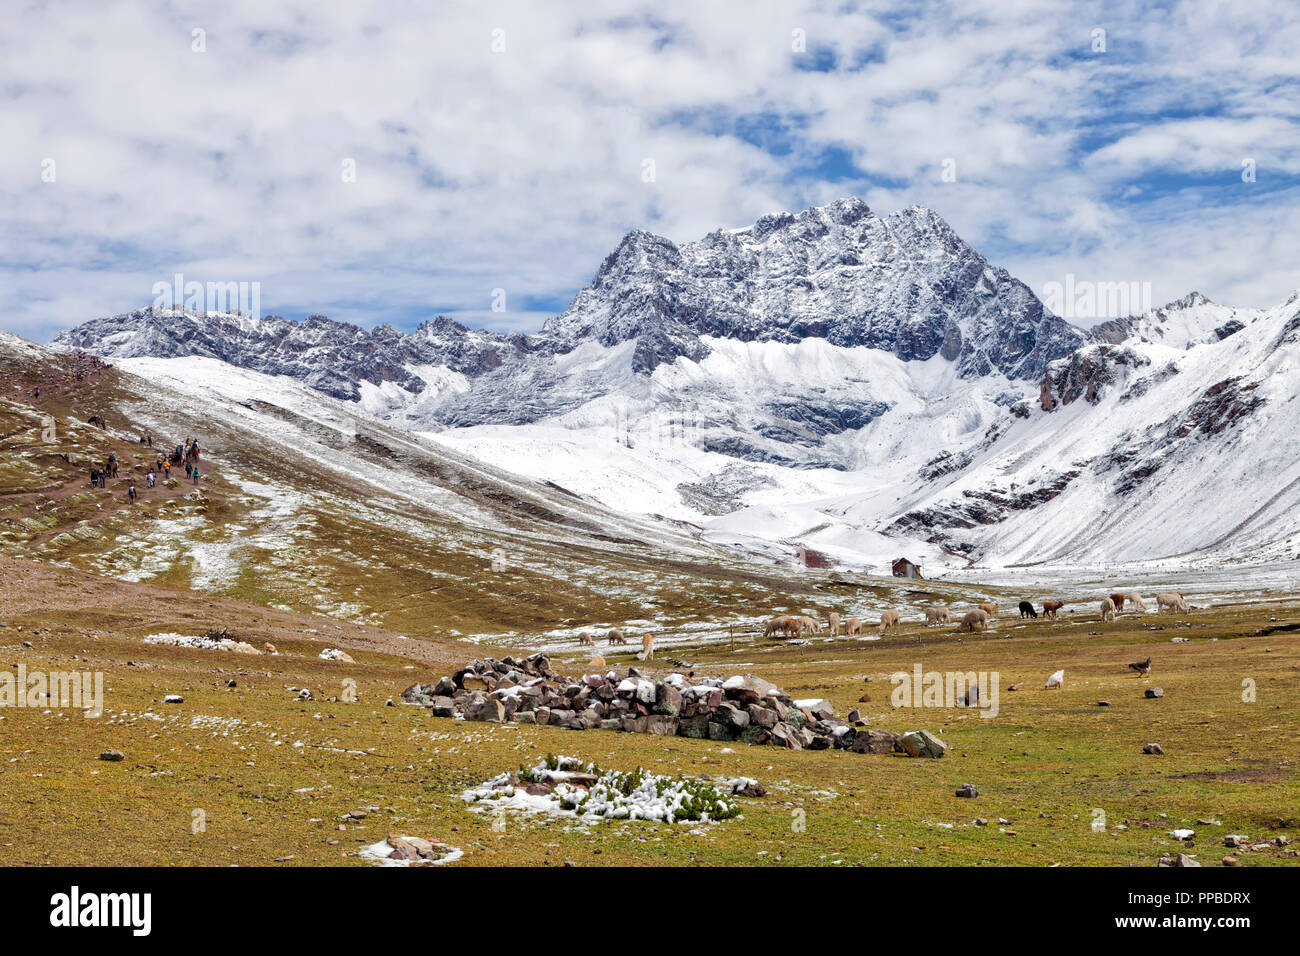 High altitude trek to Rainbow Mountains through pastures with grazing llamas and alpacas, snowy Andes, Peru . - Stock Image